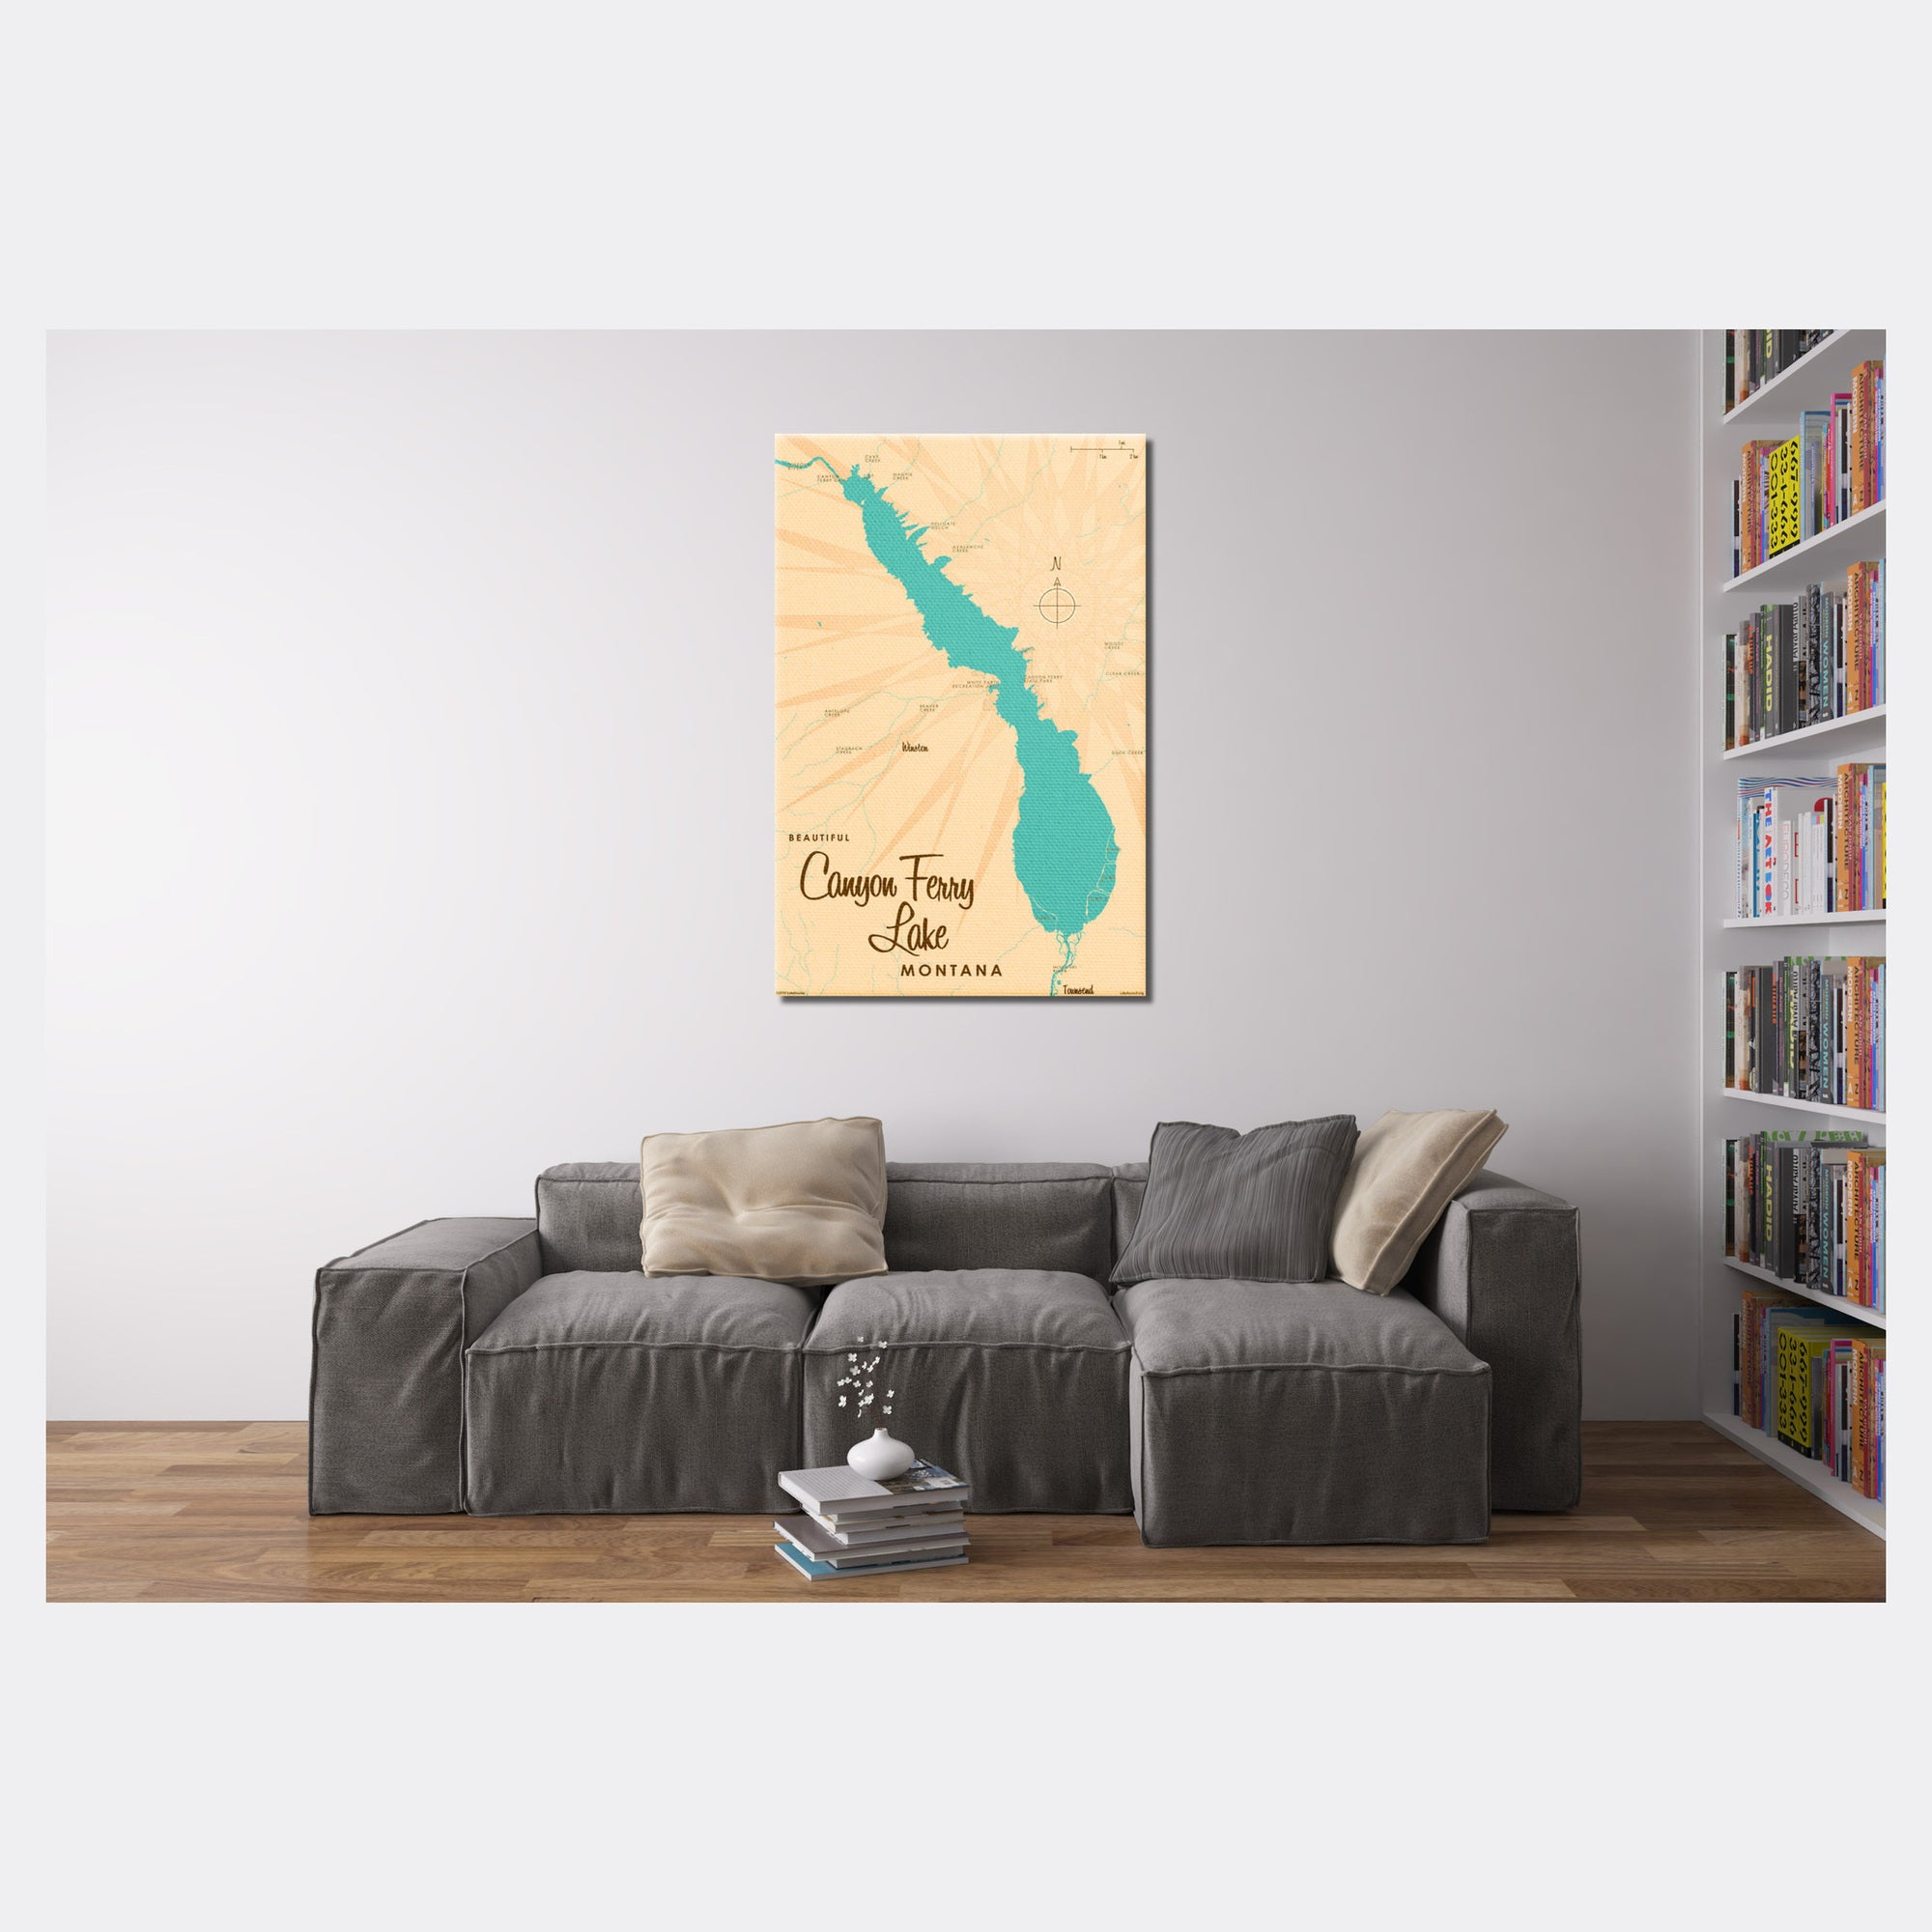 Canyon Ferry Lake Montana, Canvas Print